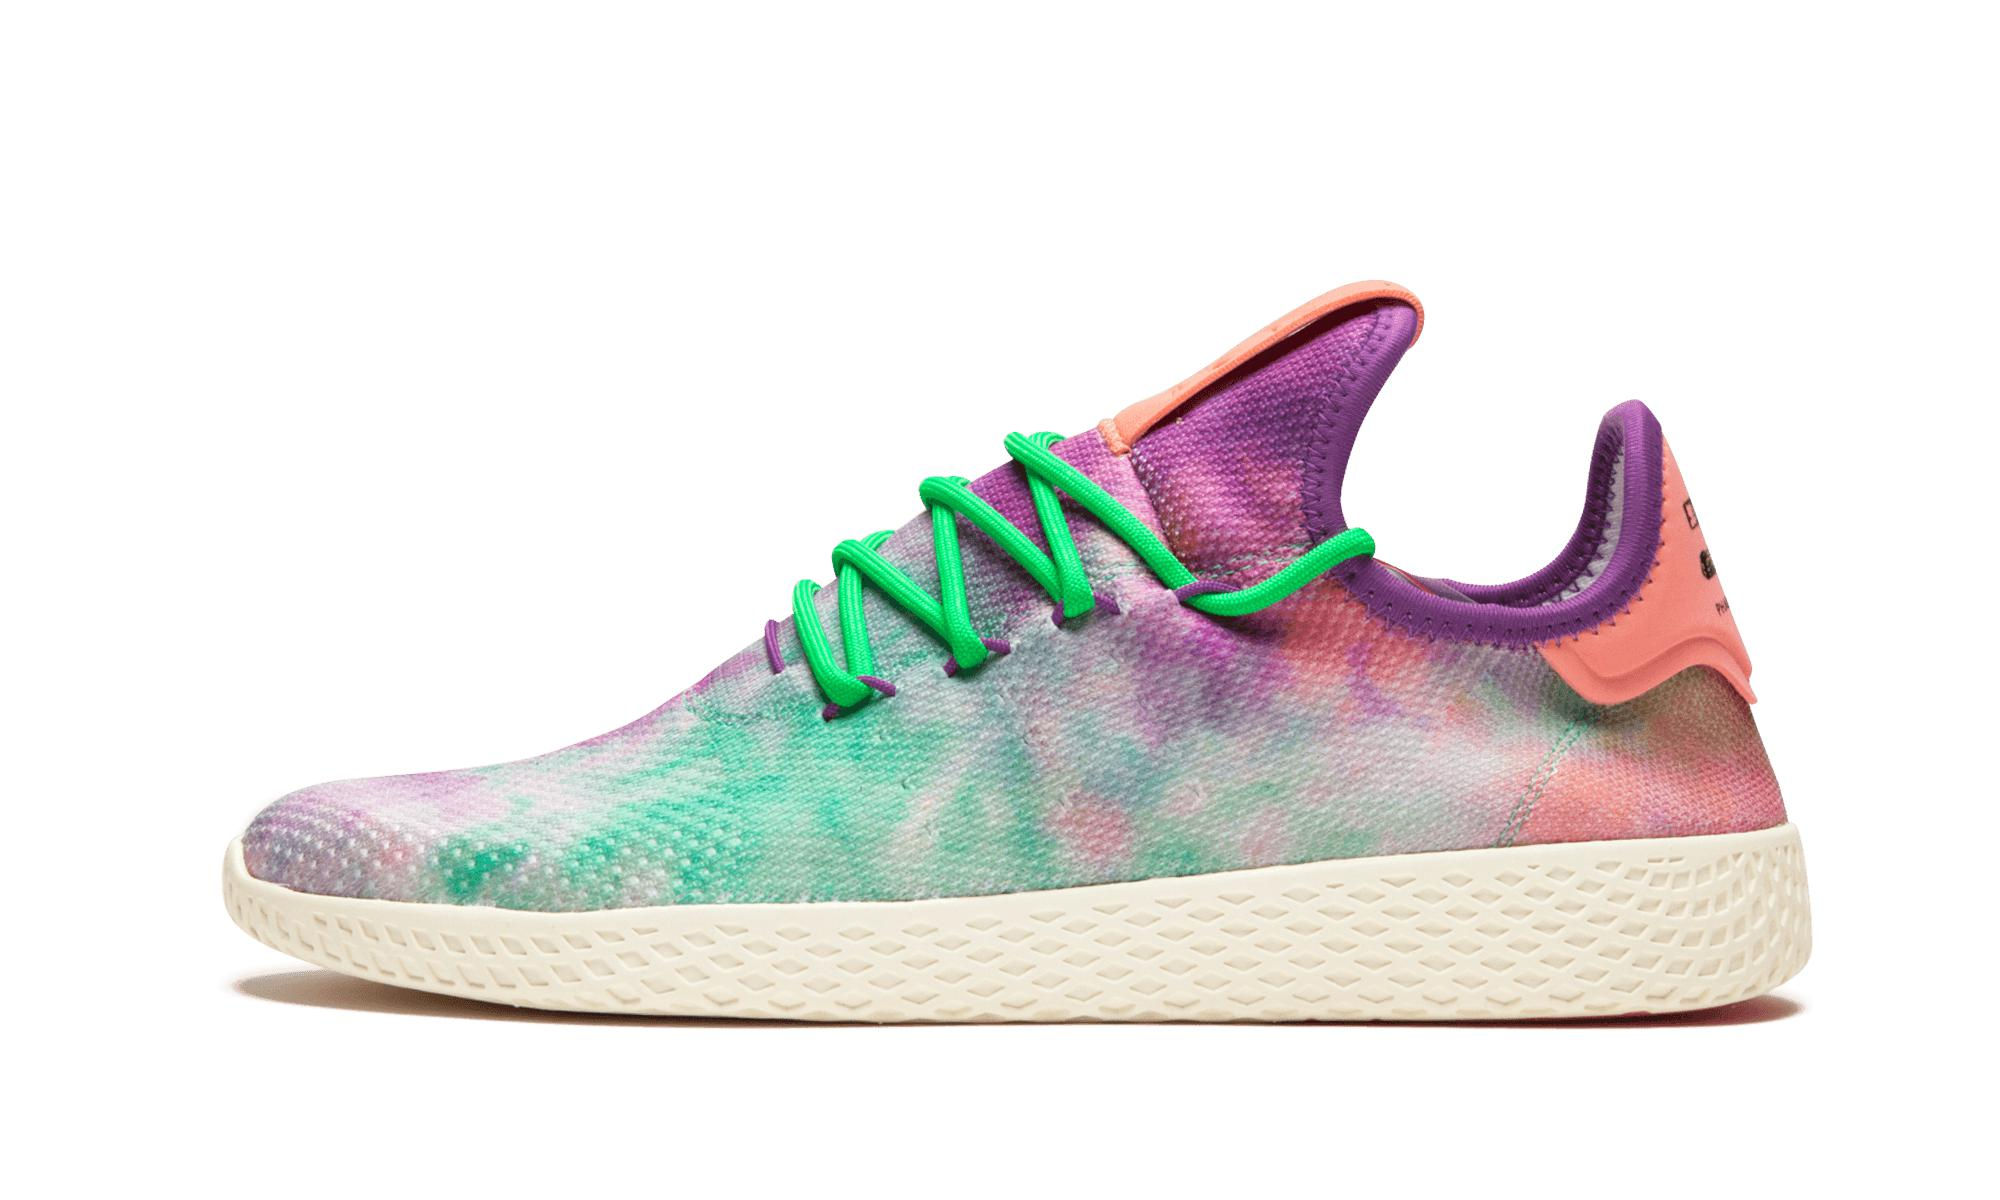 Lyst - Adidas Pharrell Williams Hu Holi Tennis Hu Mc for Men 78df0a250